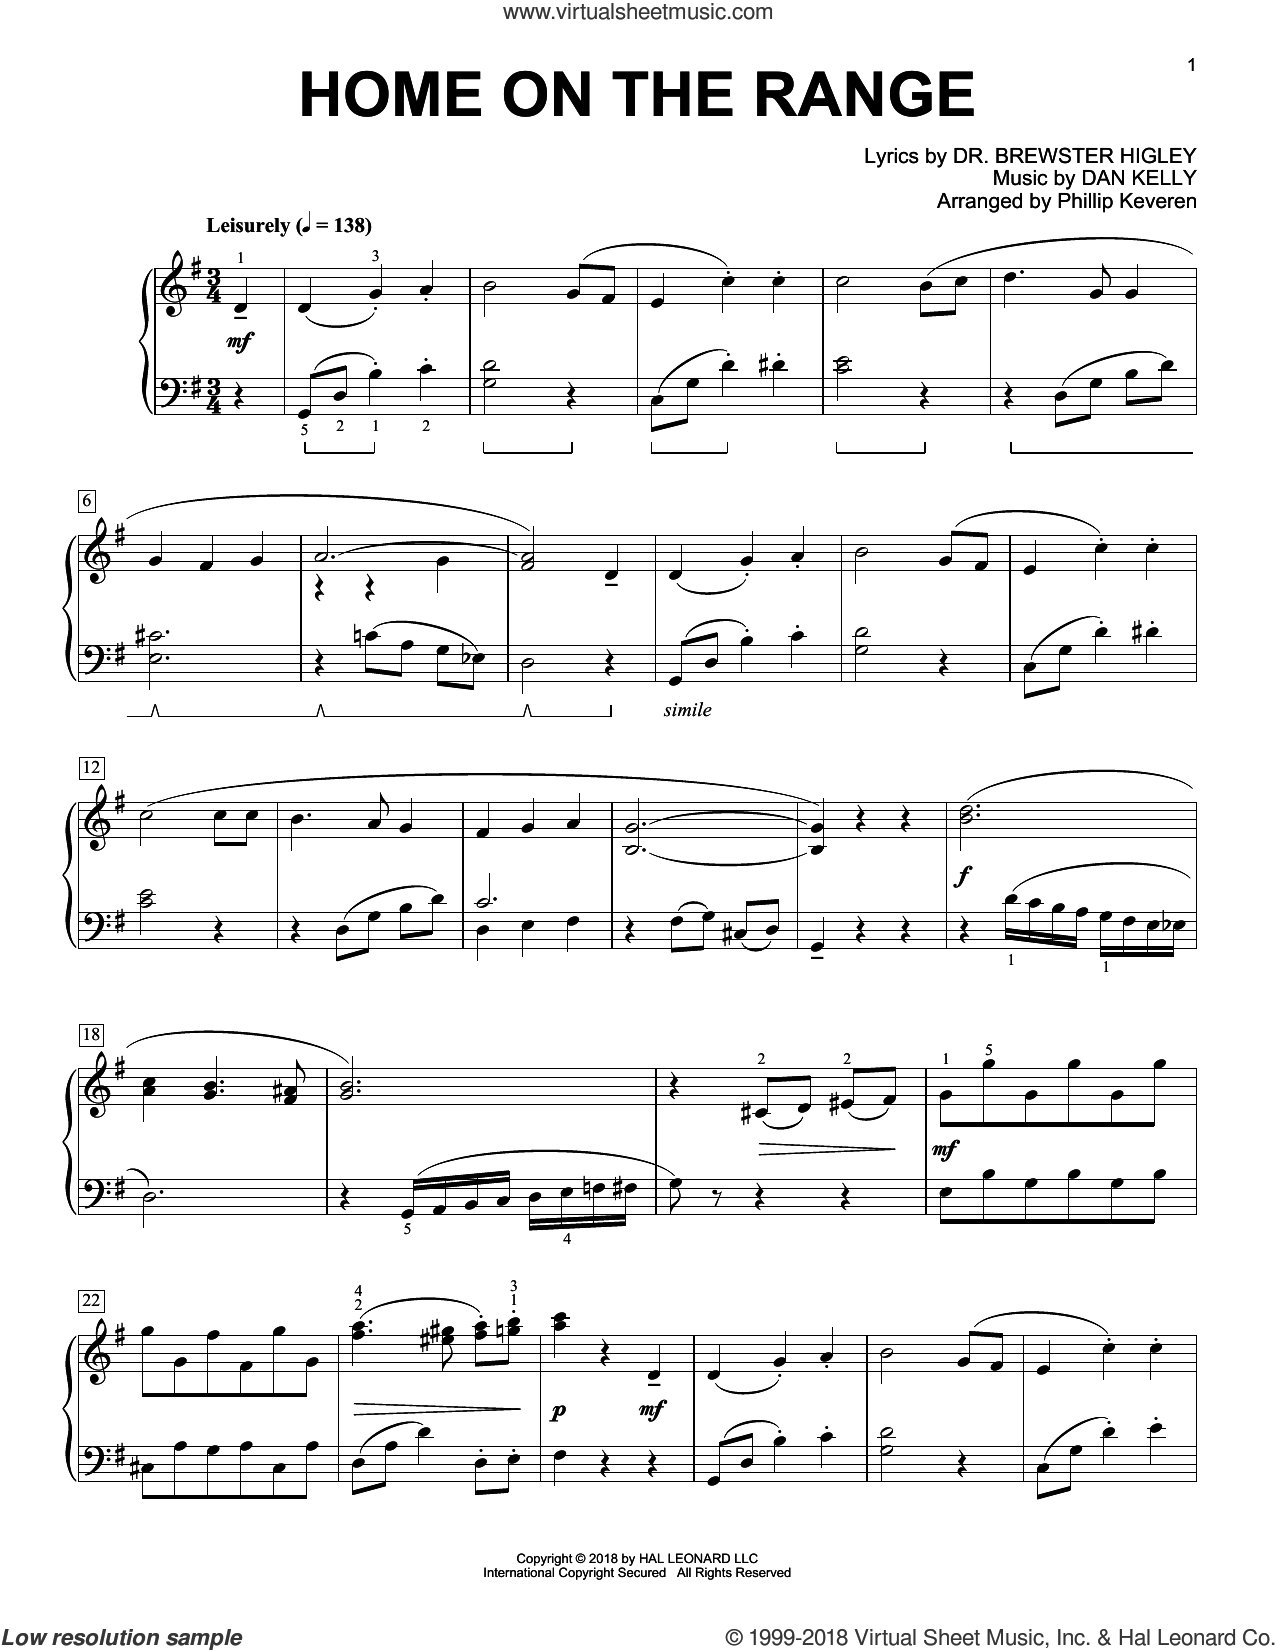 Home On The Range [Classical version] (arr. Phillip Keveren) sheet music for piano solo by Dan Kelly, Phillip Keveren and Dr. Brewster Higley, intermediate skill level